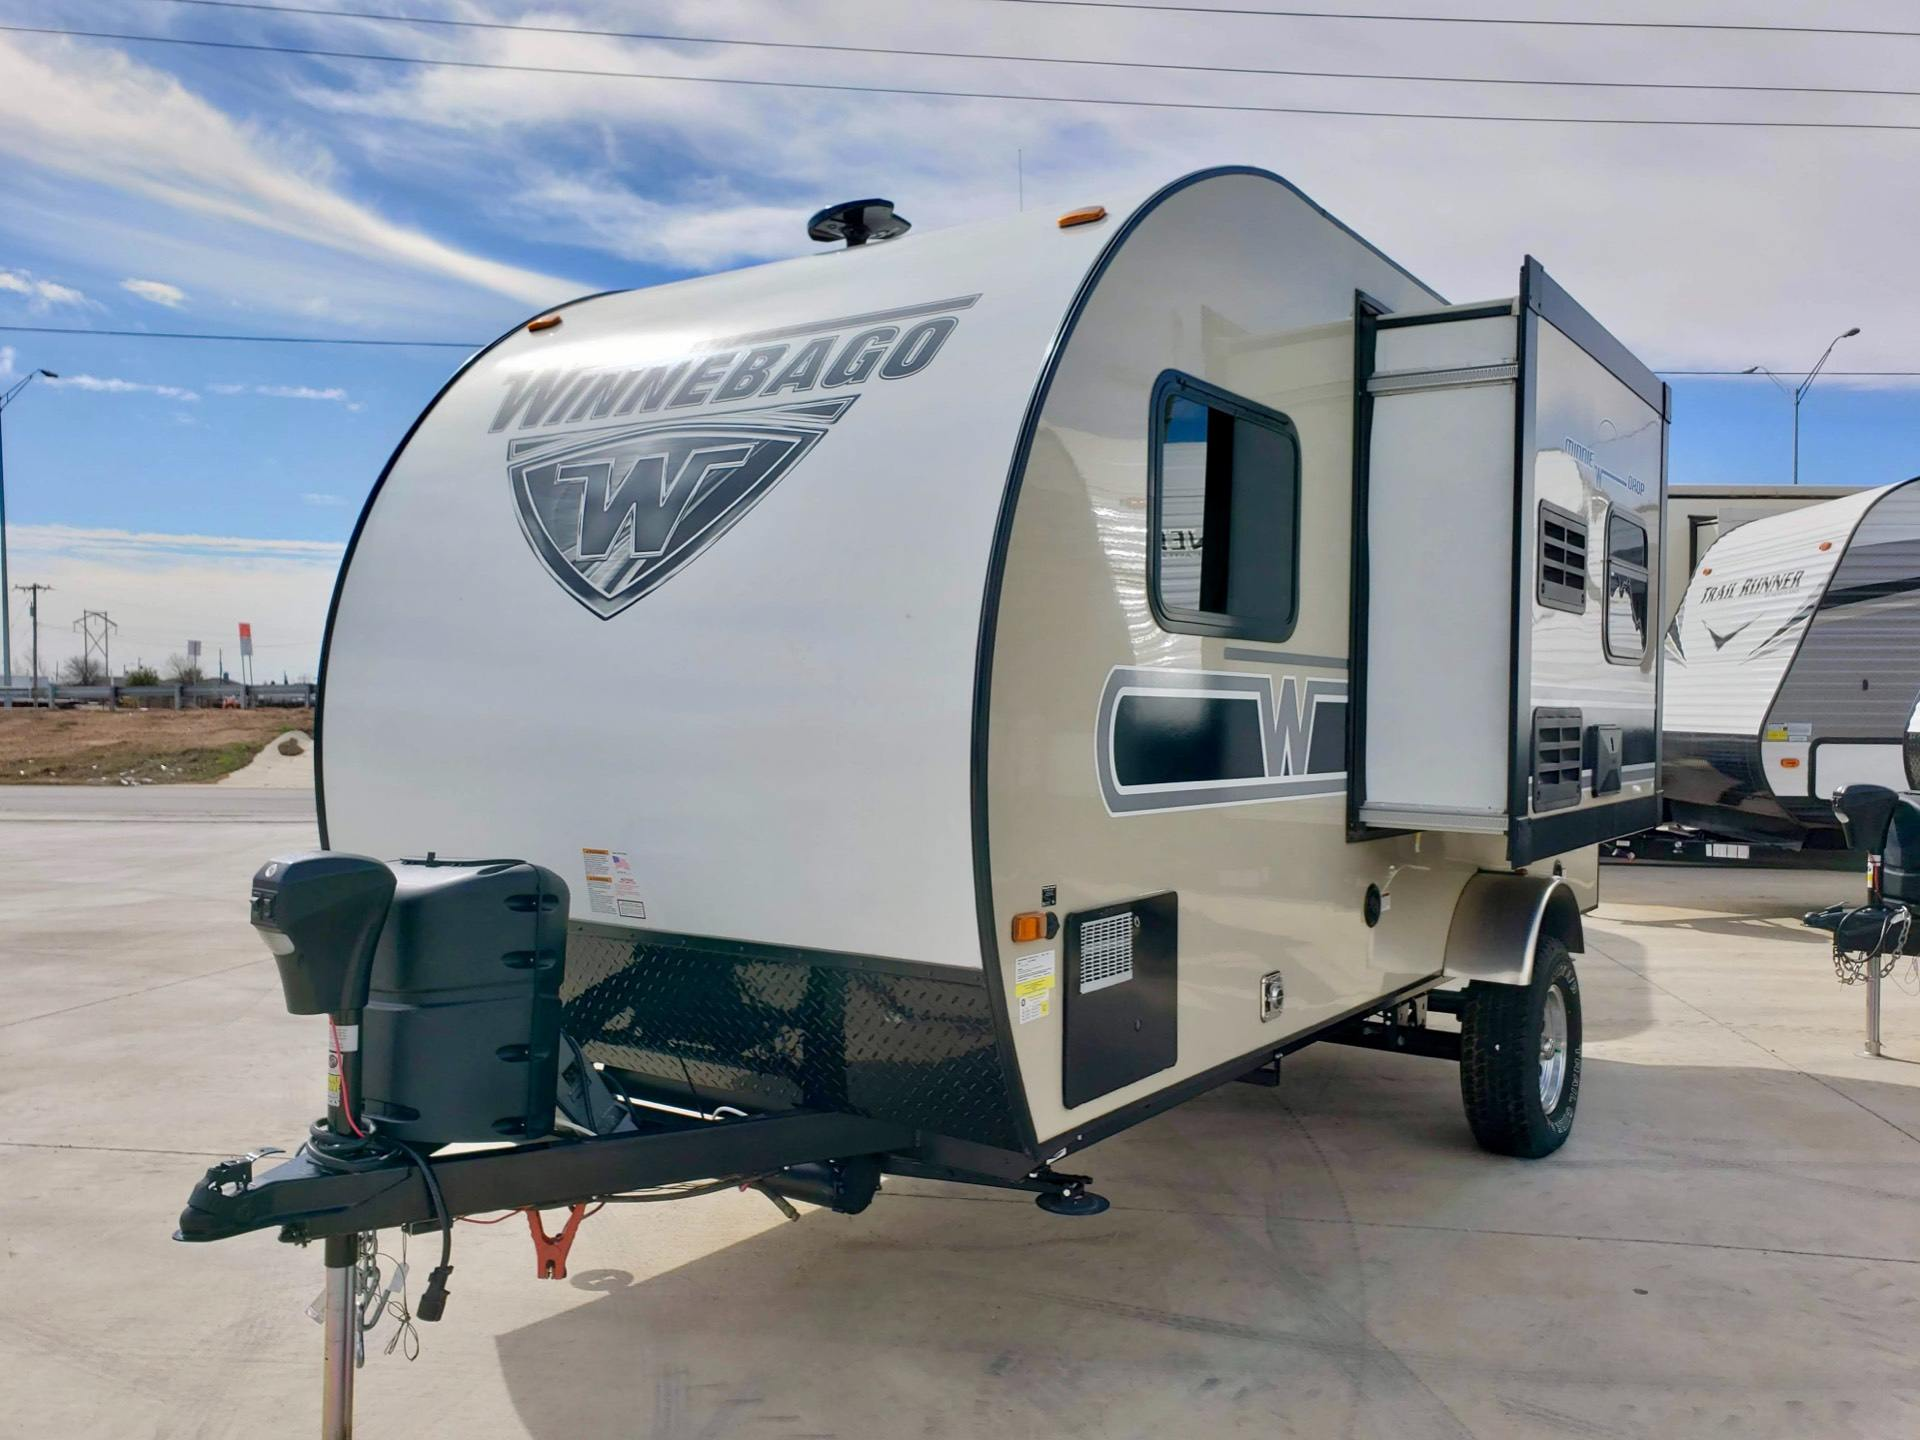 2019 Winnebago MD170K in Wolfforth, Texas - Photo 9